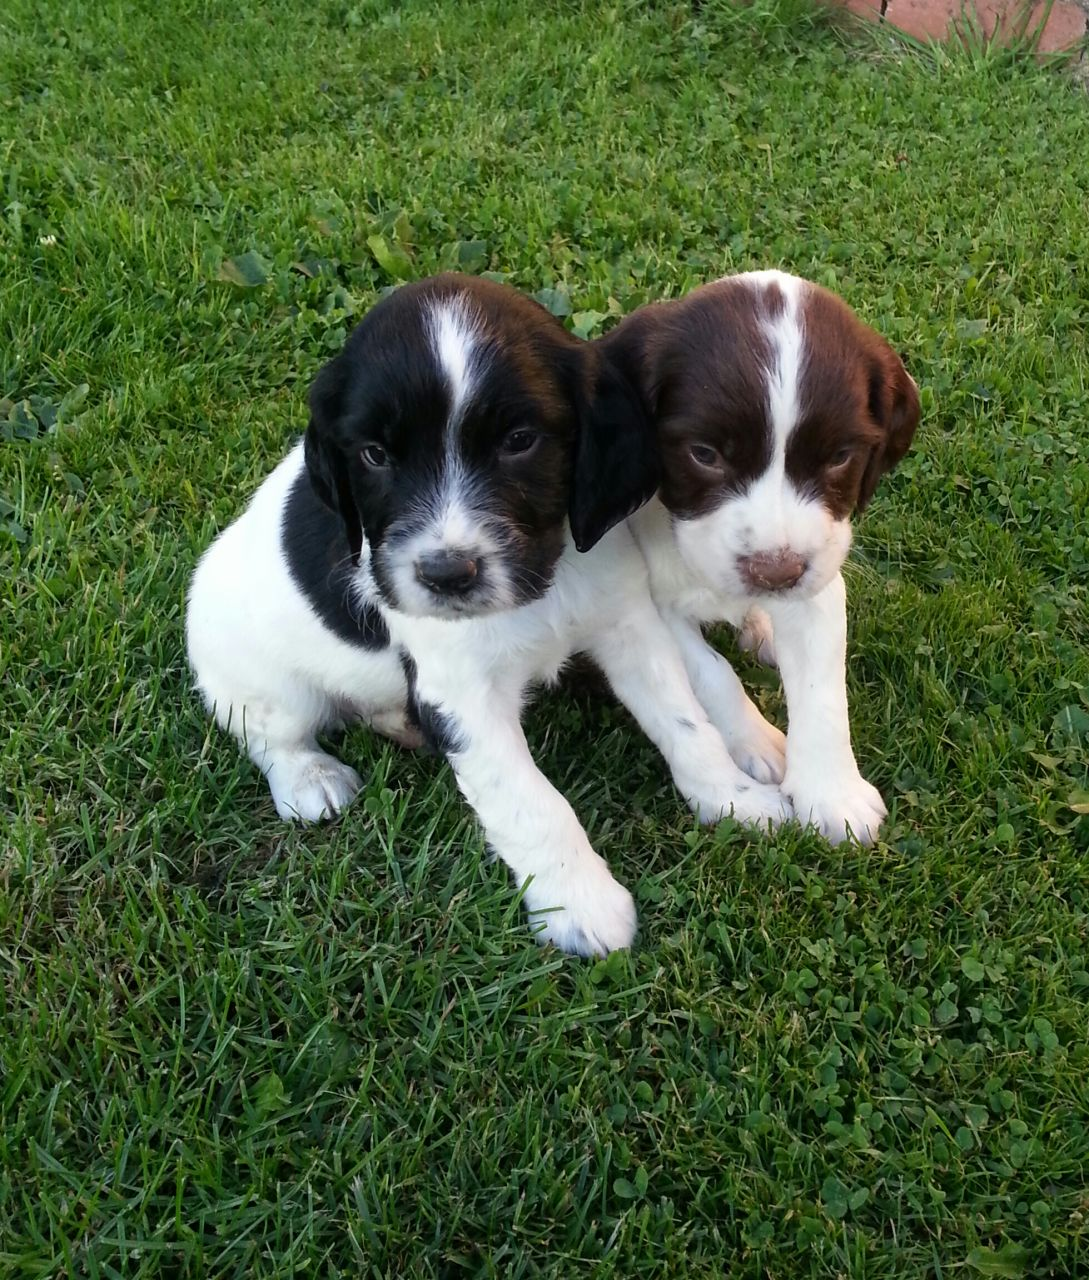 English Springer Spaniel Puppies: English Springer Spaniel Puppies Breed